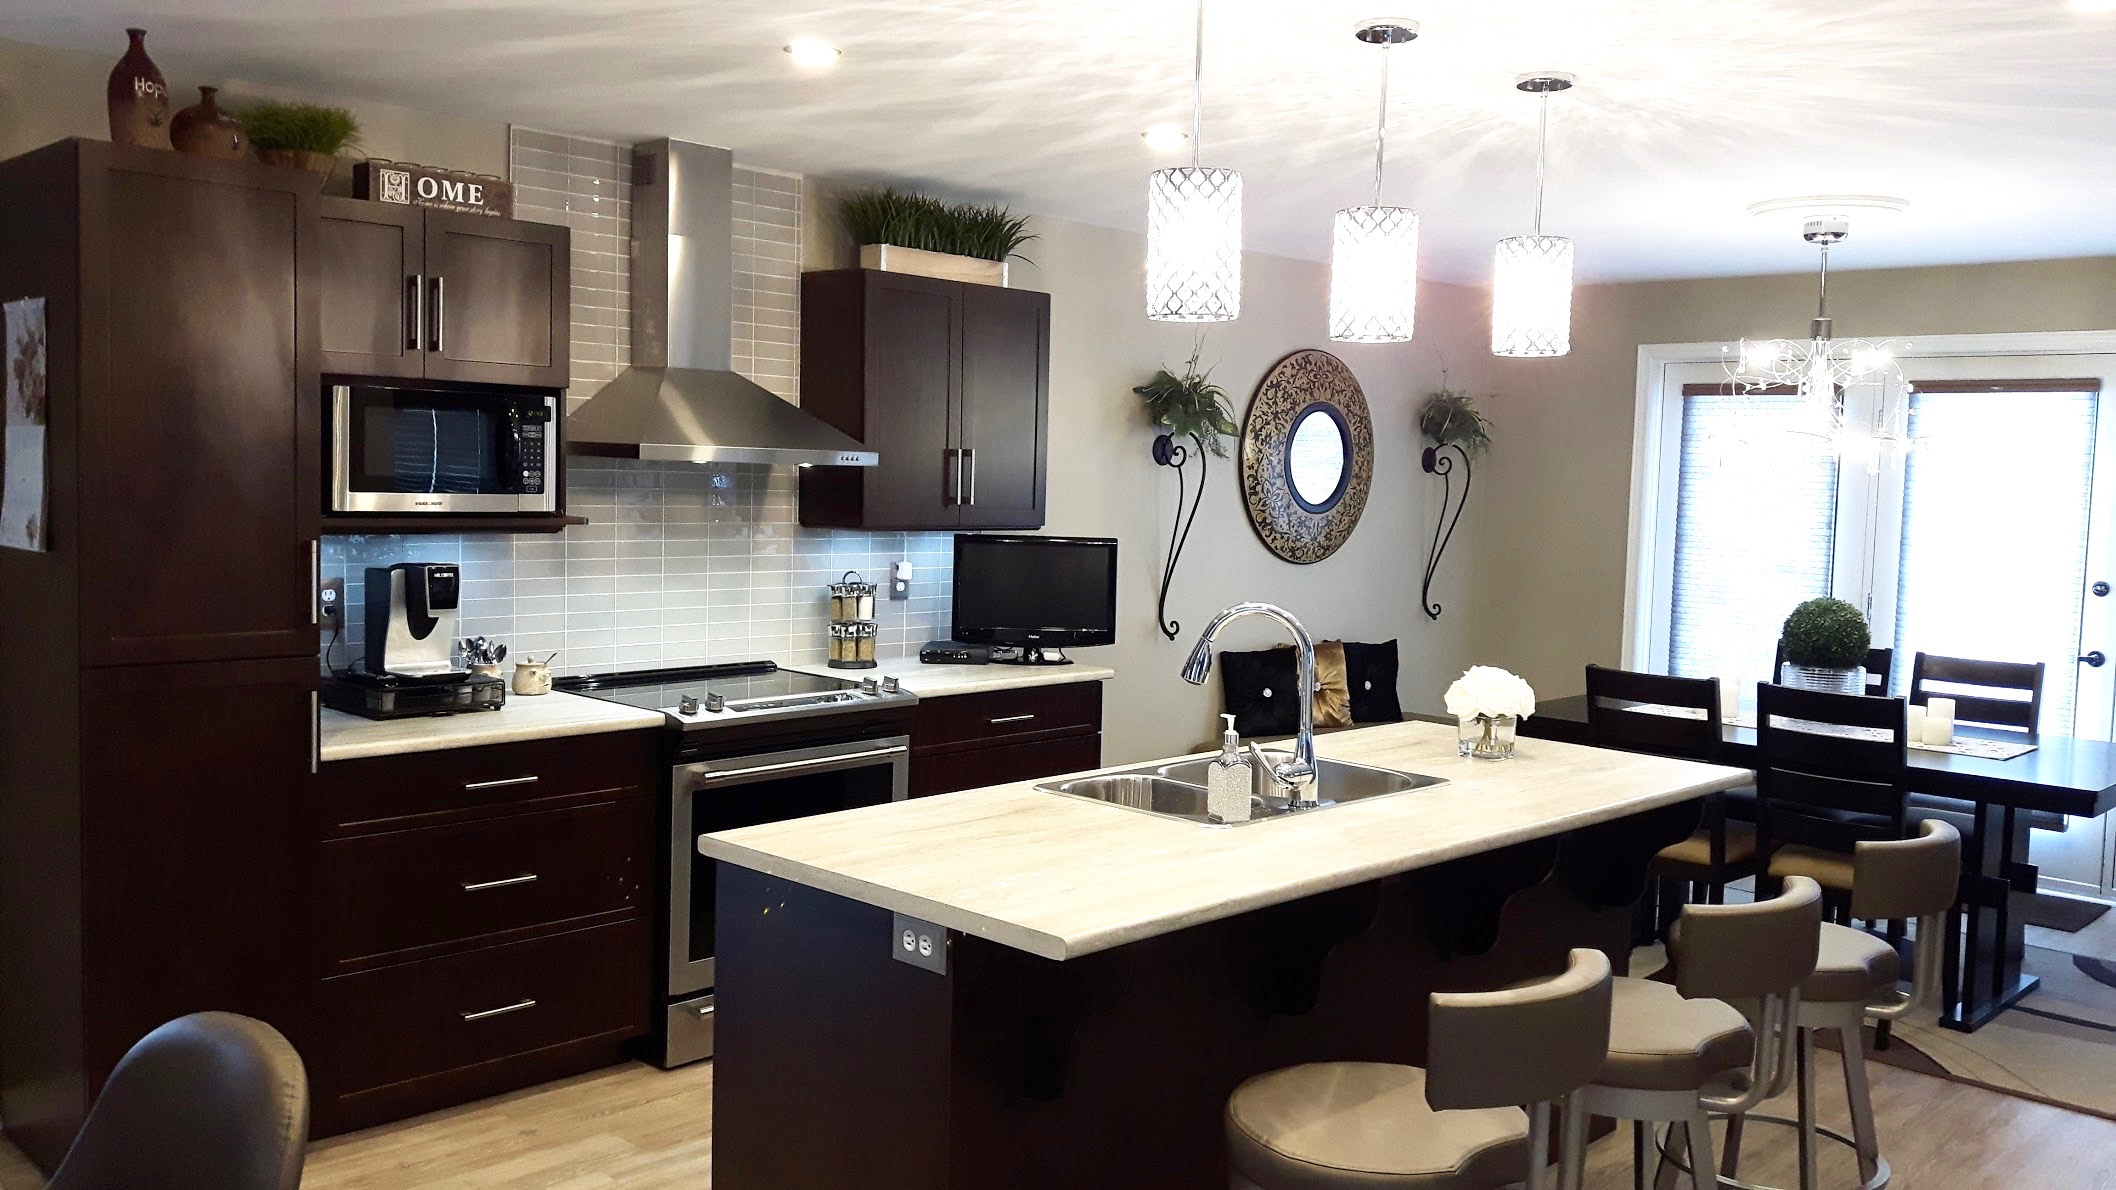 Full kitchen remodel with flooring, cabinets, countertops, and backsplash